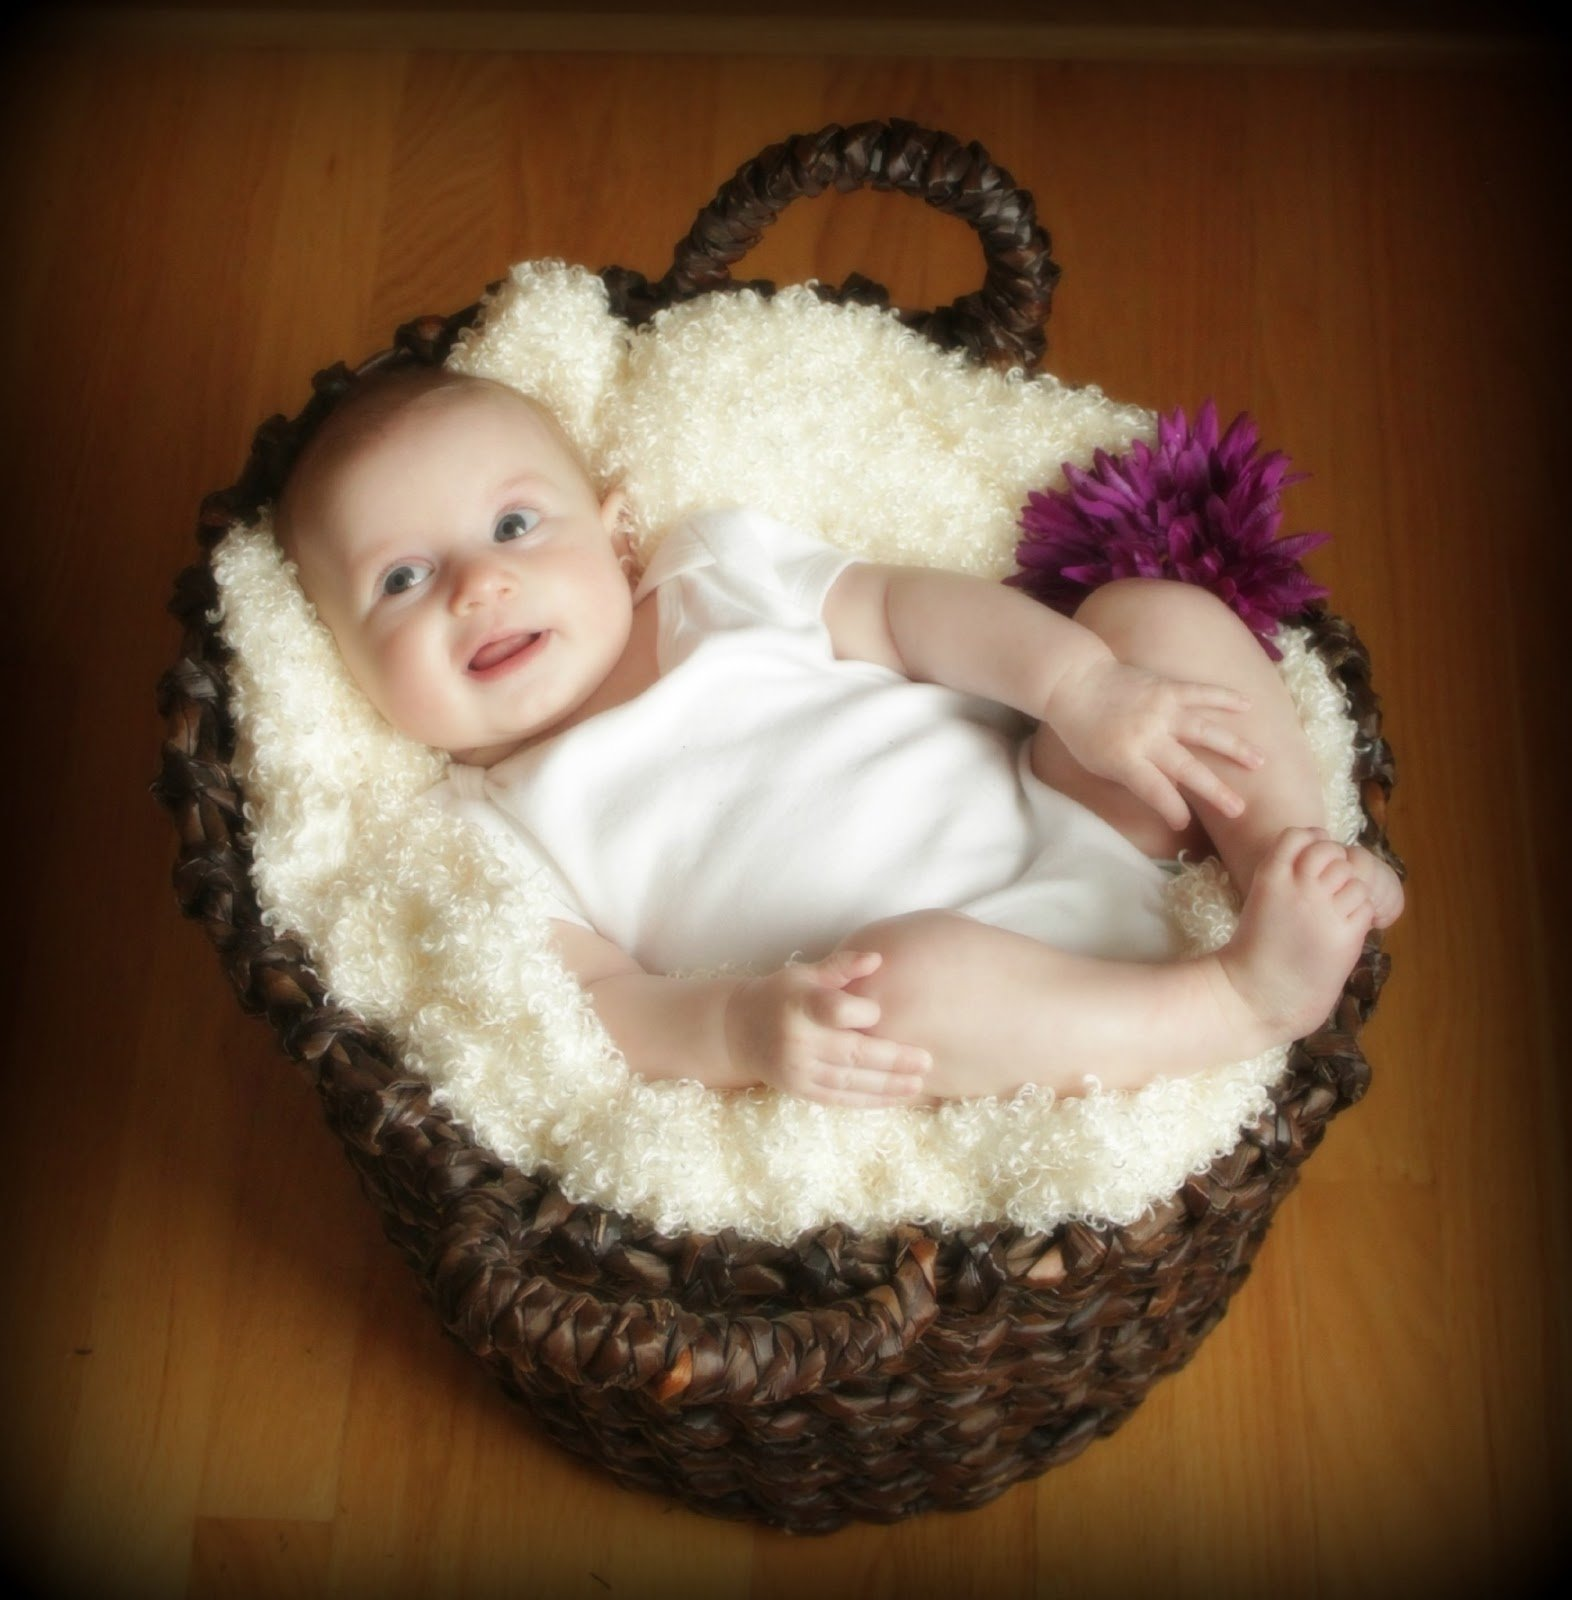 10 Fantastic 3 Month Old Photo Ideas number 1 viking fan miss ilia 3 months old 2020